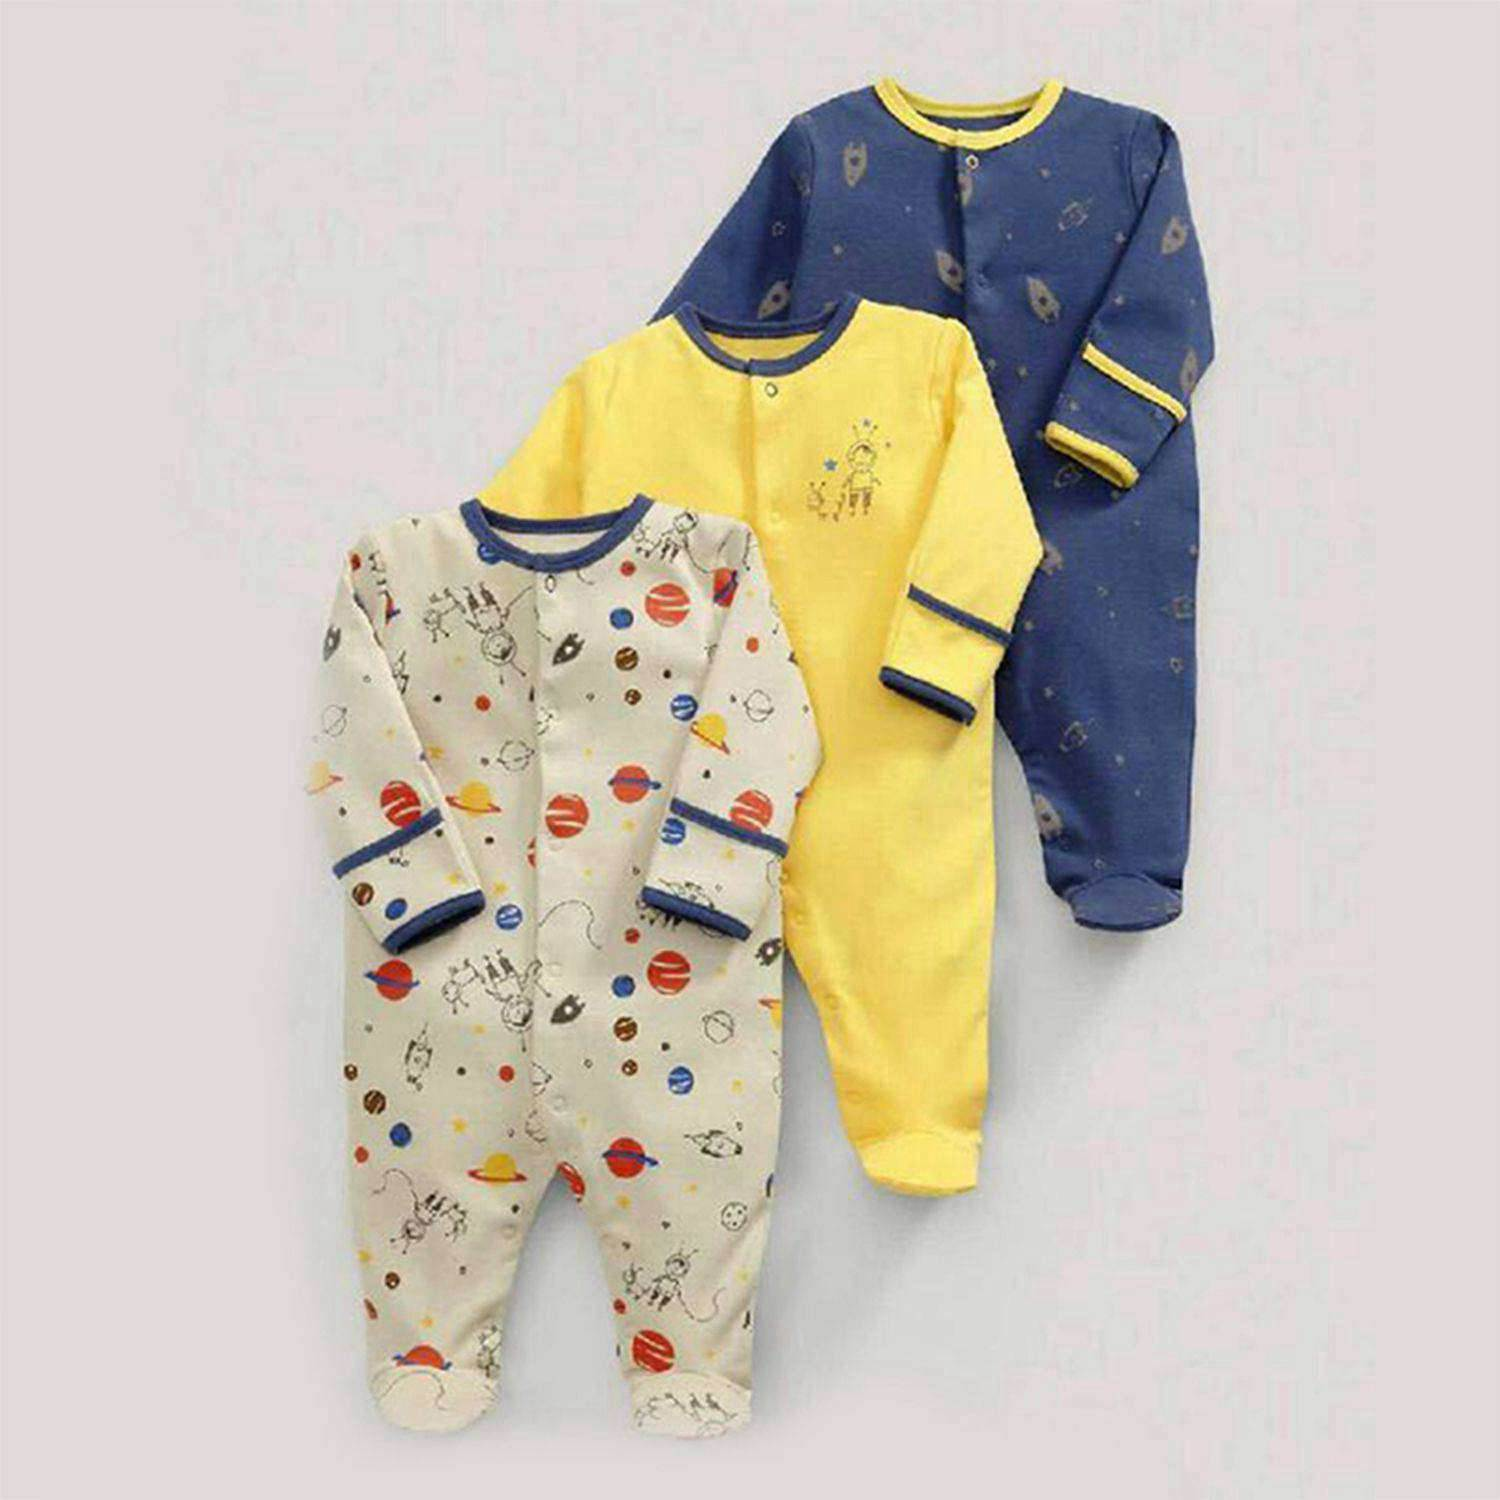 Baby Spring and Autumn Planets Cotton Long Sleeve Baby One Piece Swimsuit 3 Piece Set 50cm(Beige & Yellow & Blue)Baby Spring and Autumn Planets Cotton Long Sleeve Baby One Piece Swimsuit 3 Piece Set 50cm(Beige & Yellow & Blue)